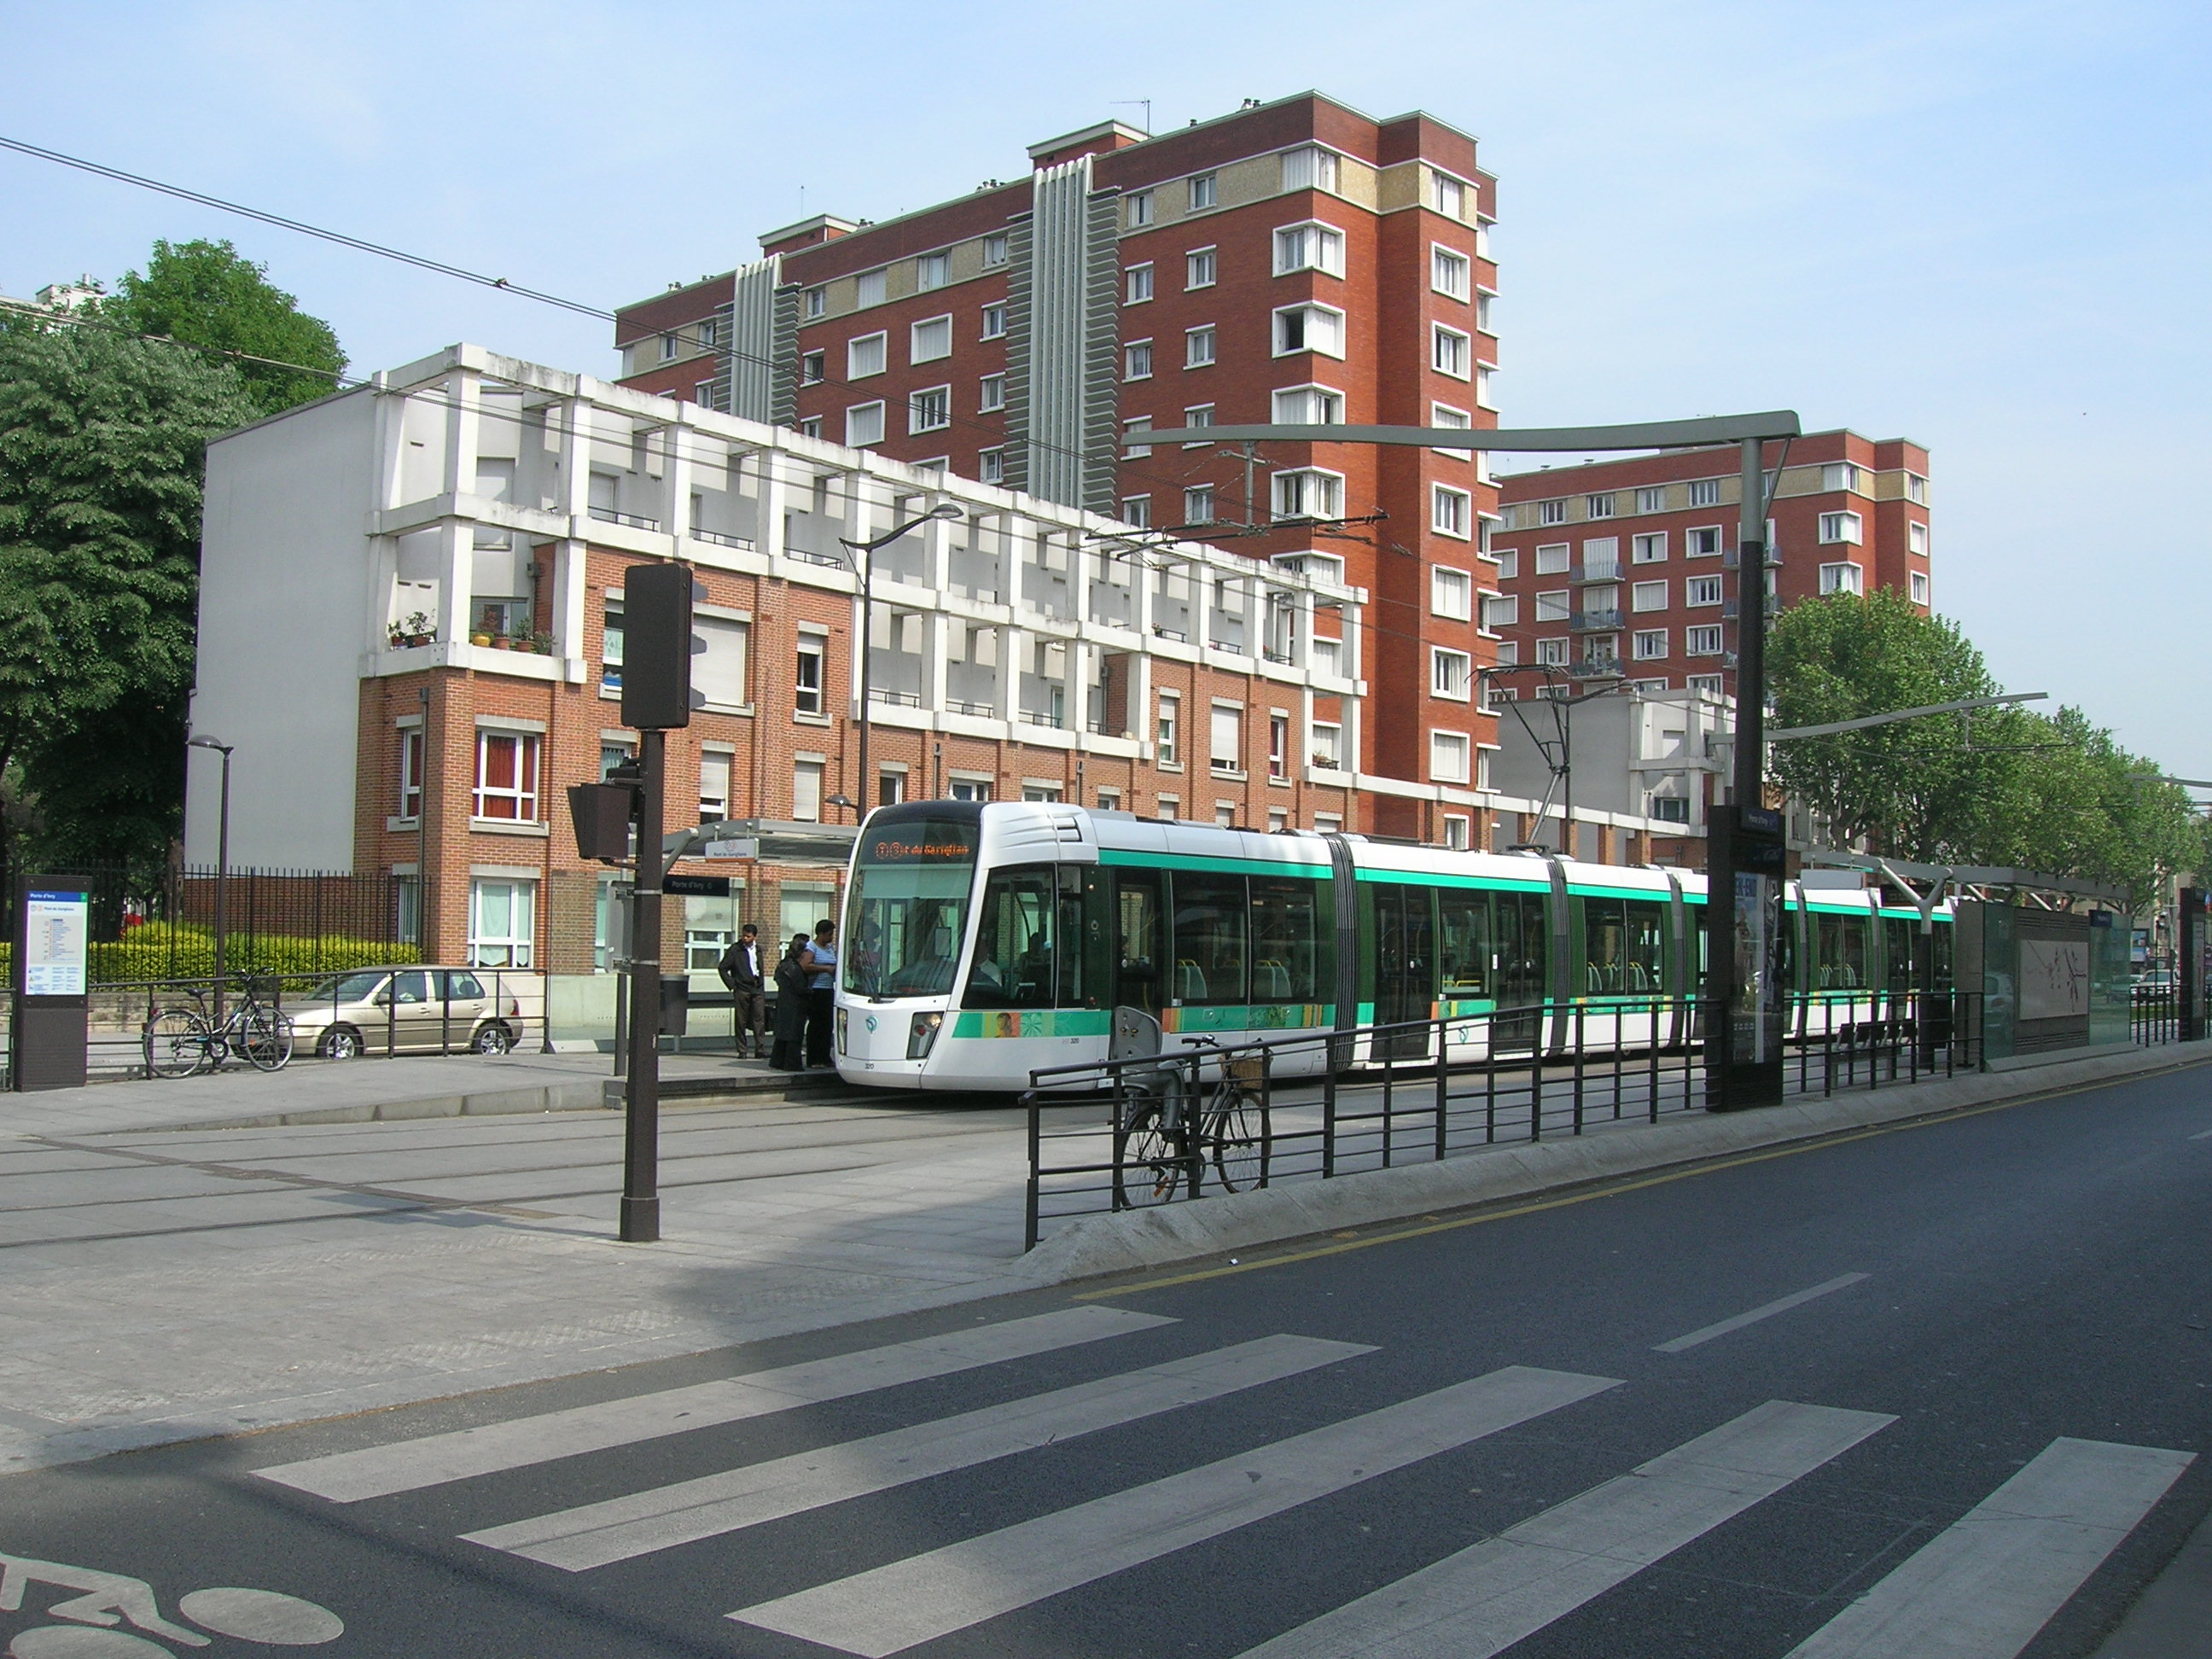 file metro 7 porte d ivry tramway jpg wikimedia commons. Black Bedroom Furniture Sets. Home Design Ideas